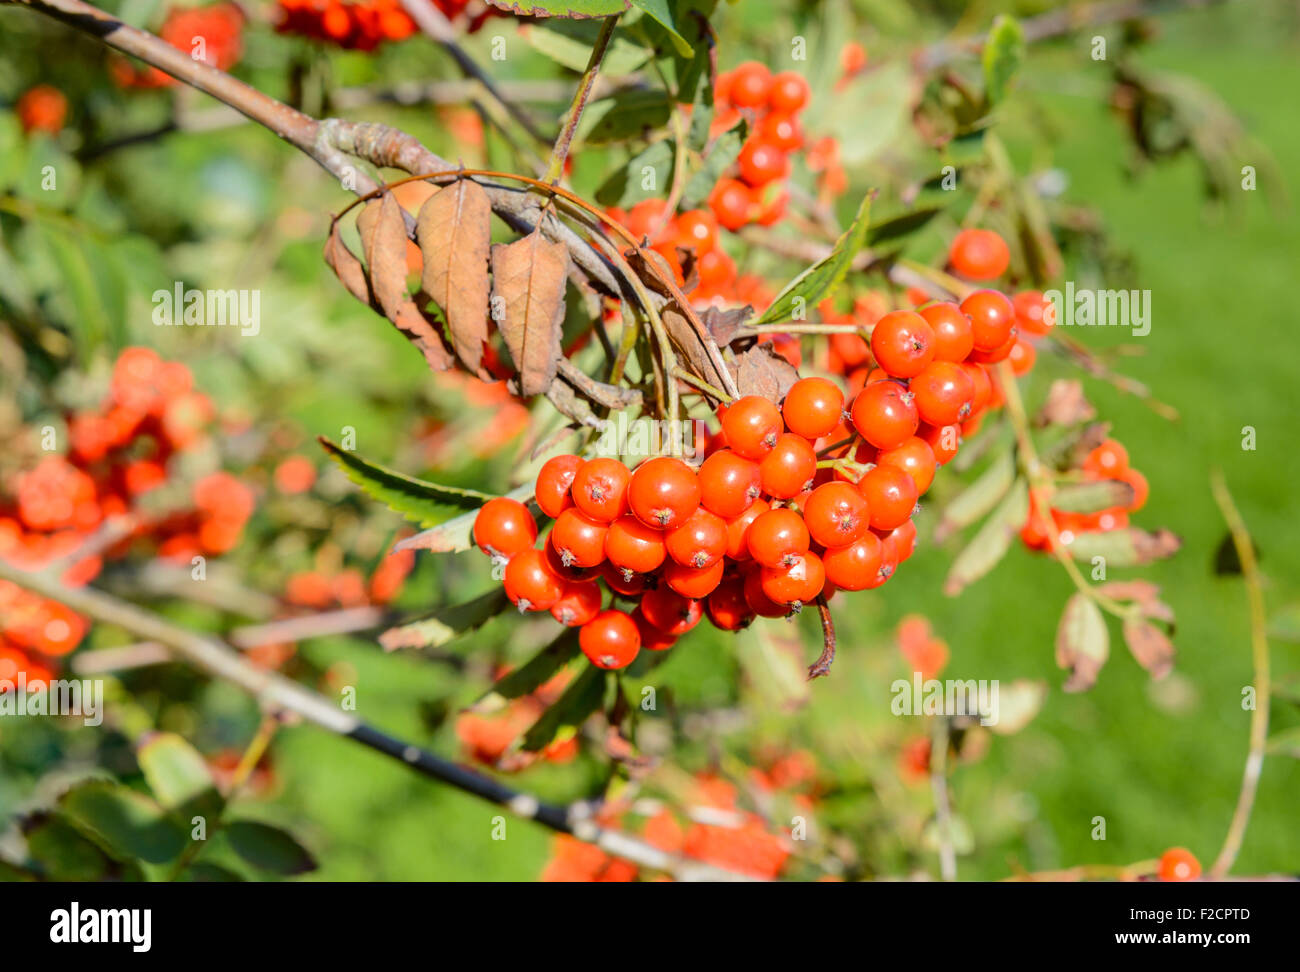 Sorbus aucuparia. Berries from a Mountain Ash tree (Rowan Tree) in early Autumn in the UK. - Stock Image